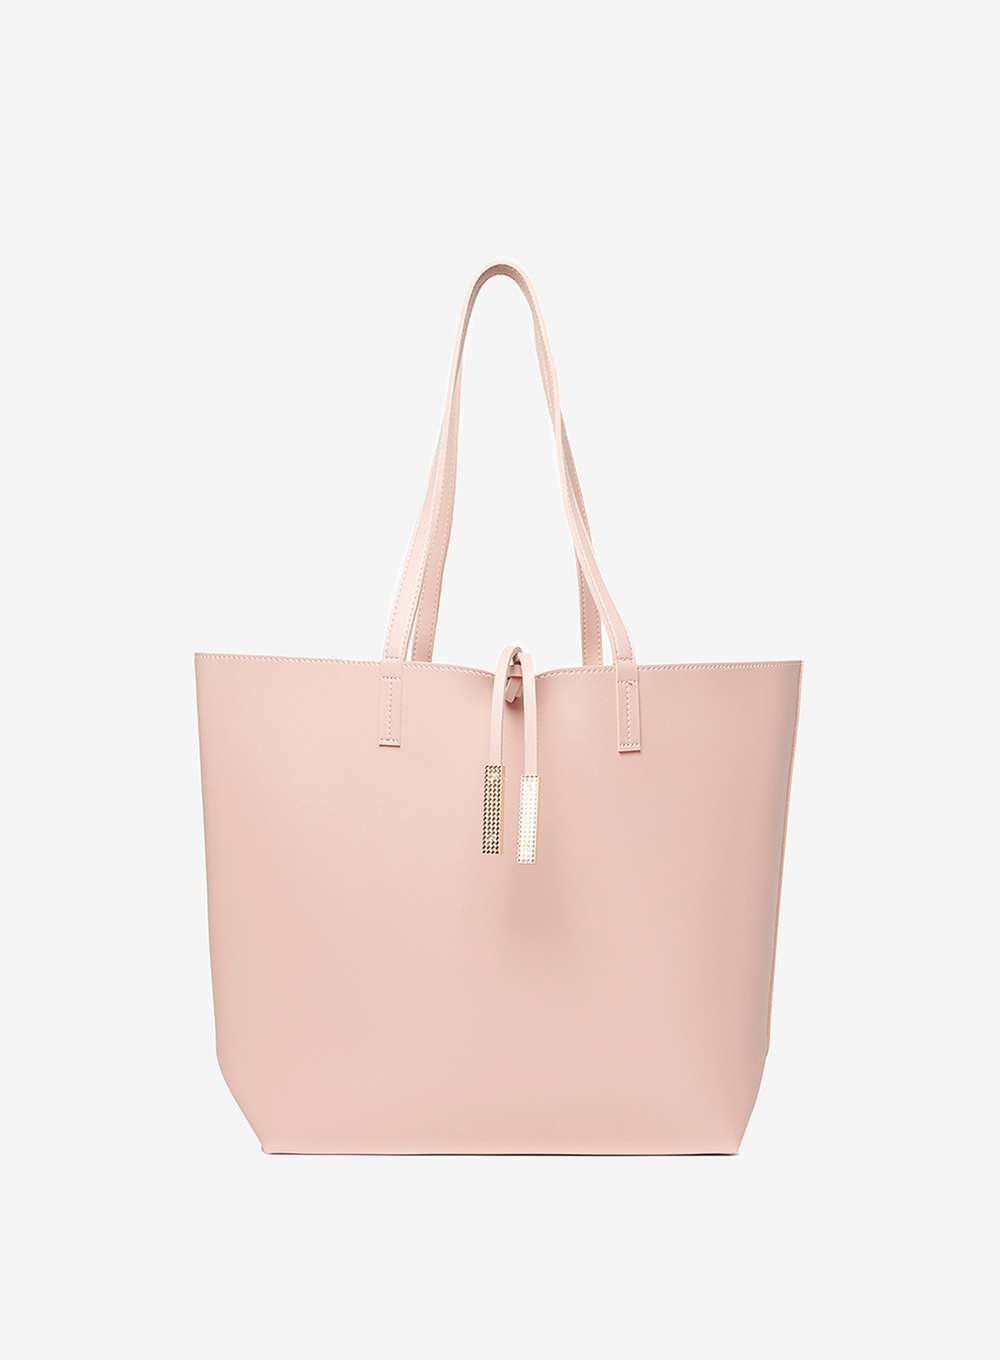 Gallery Previously Sold At Dorothy Perkins Women S Per Bags